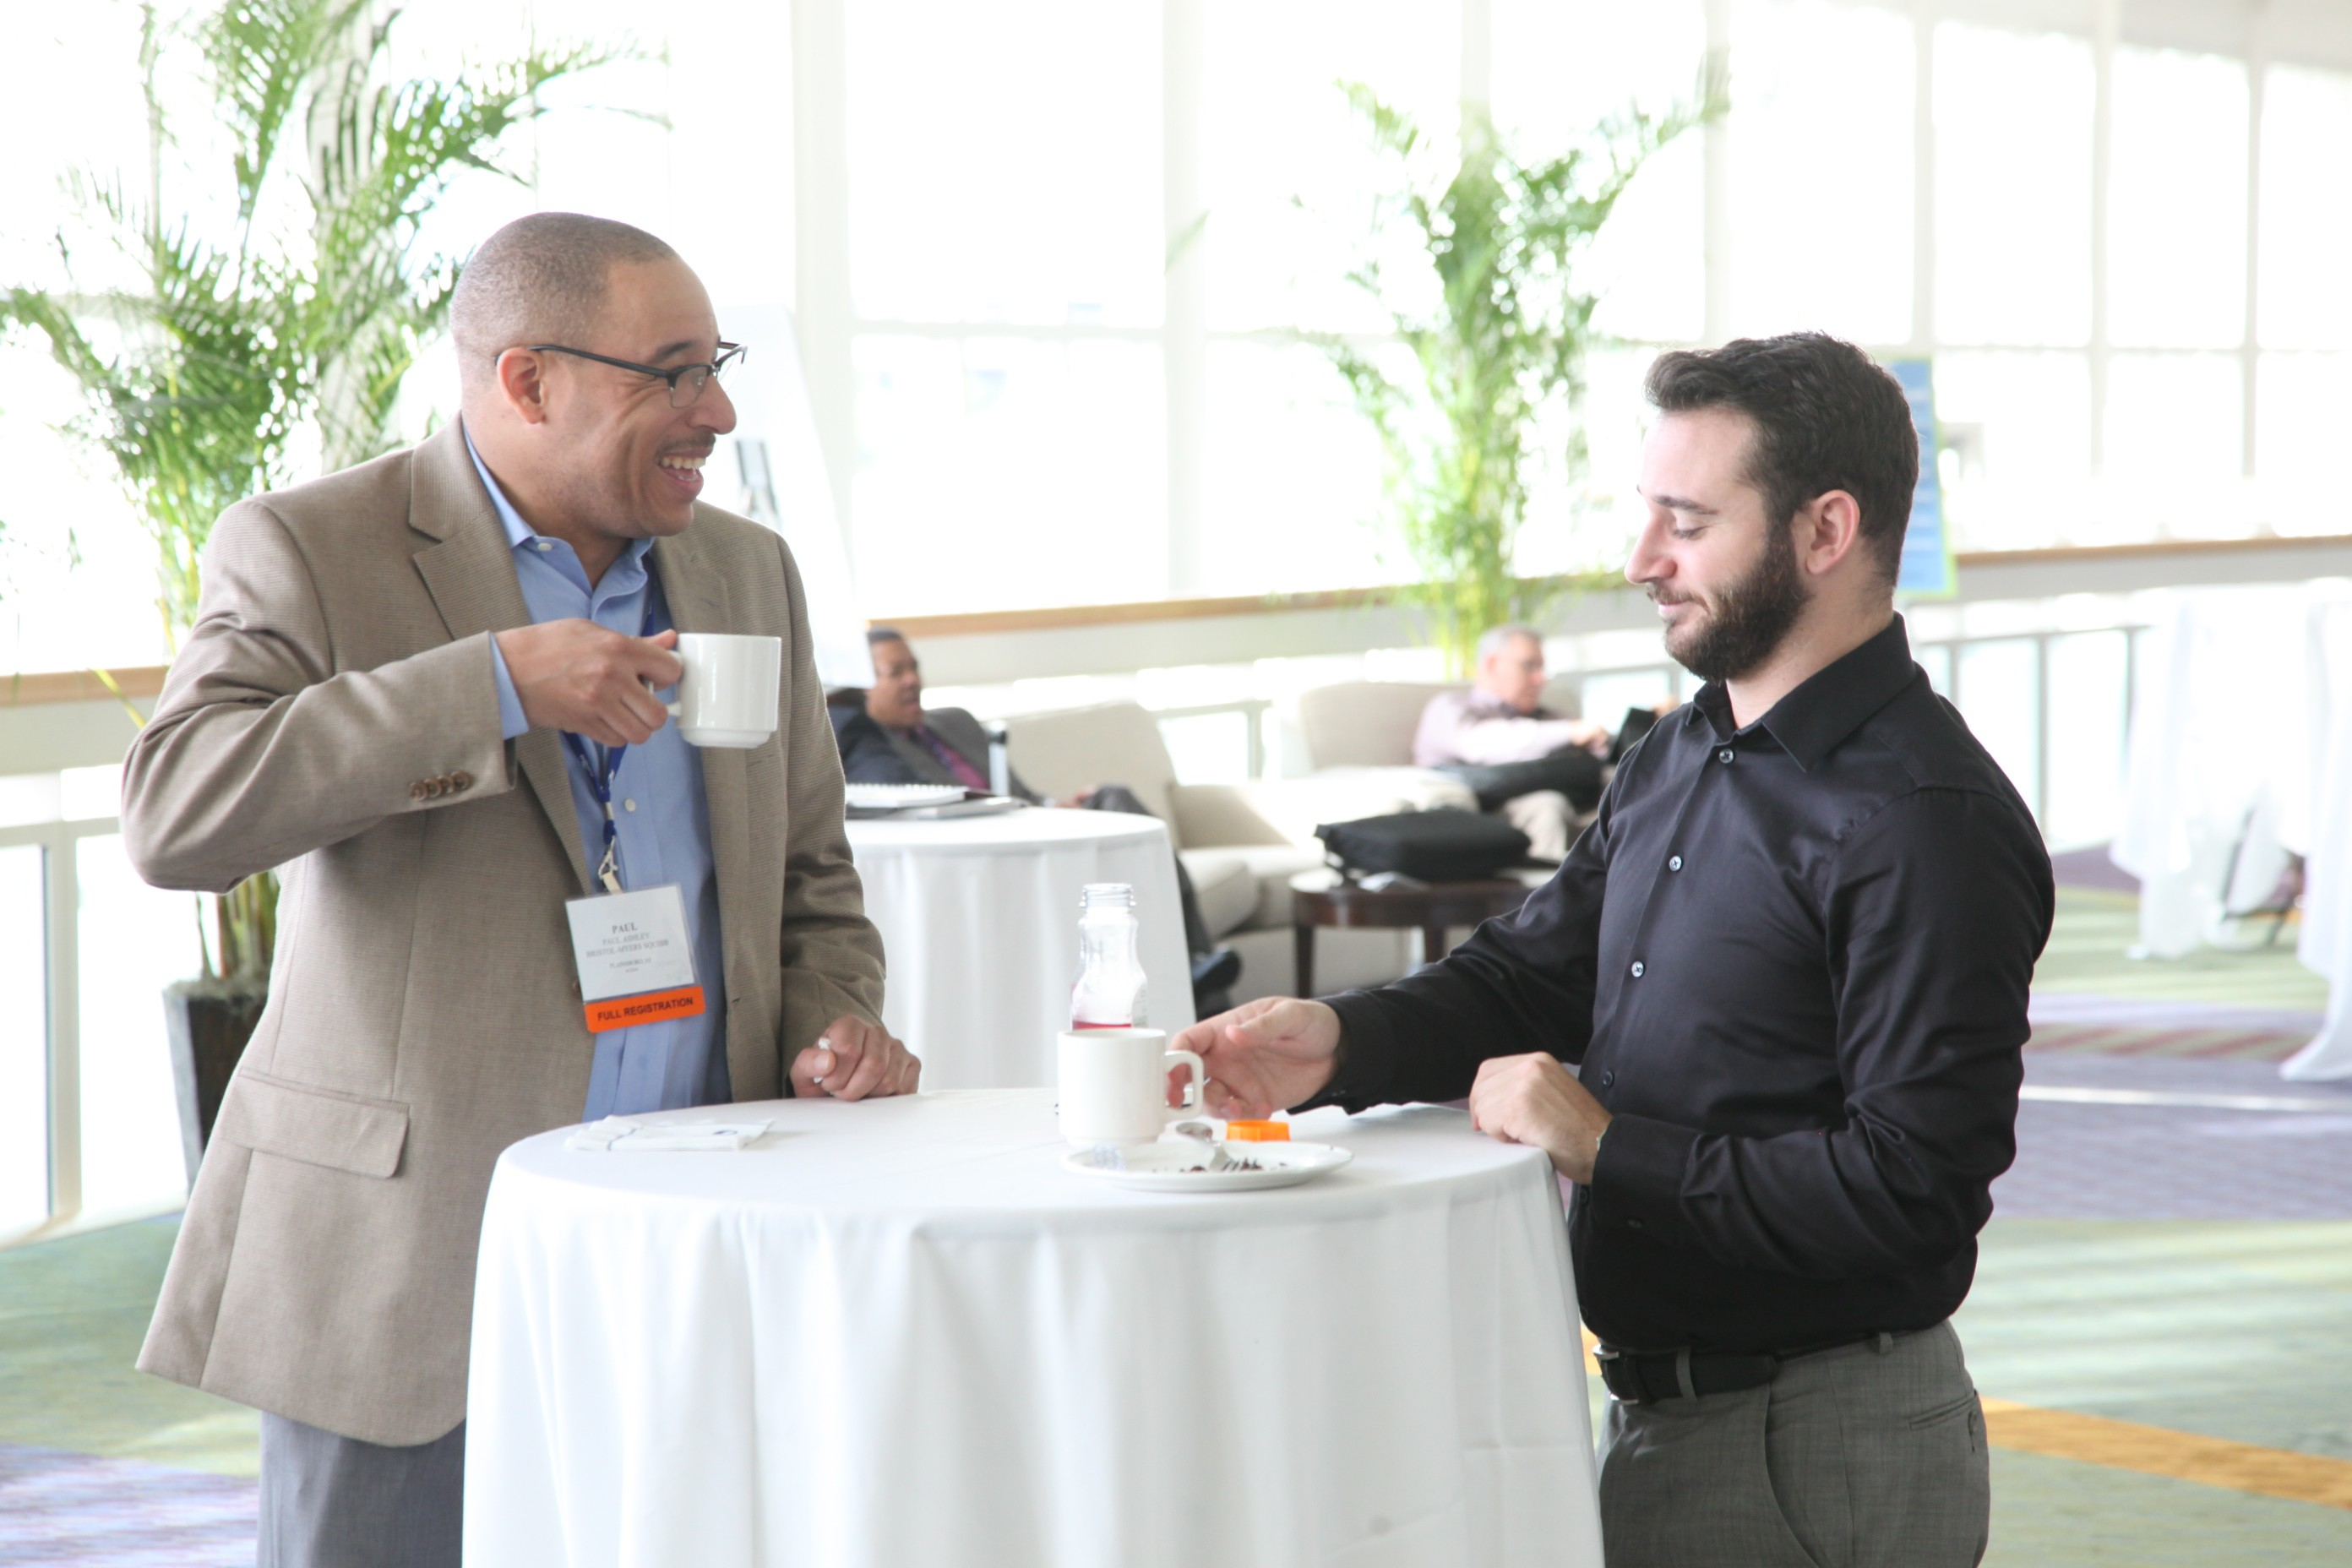 NMSDC attendees share a laugh over coffee during Wednesday's Networking Continental Breakfast.